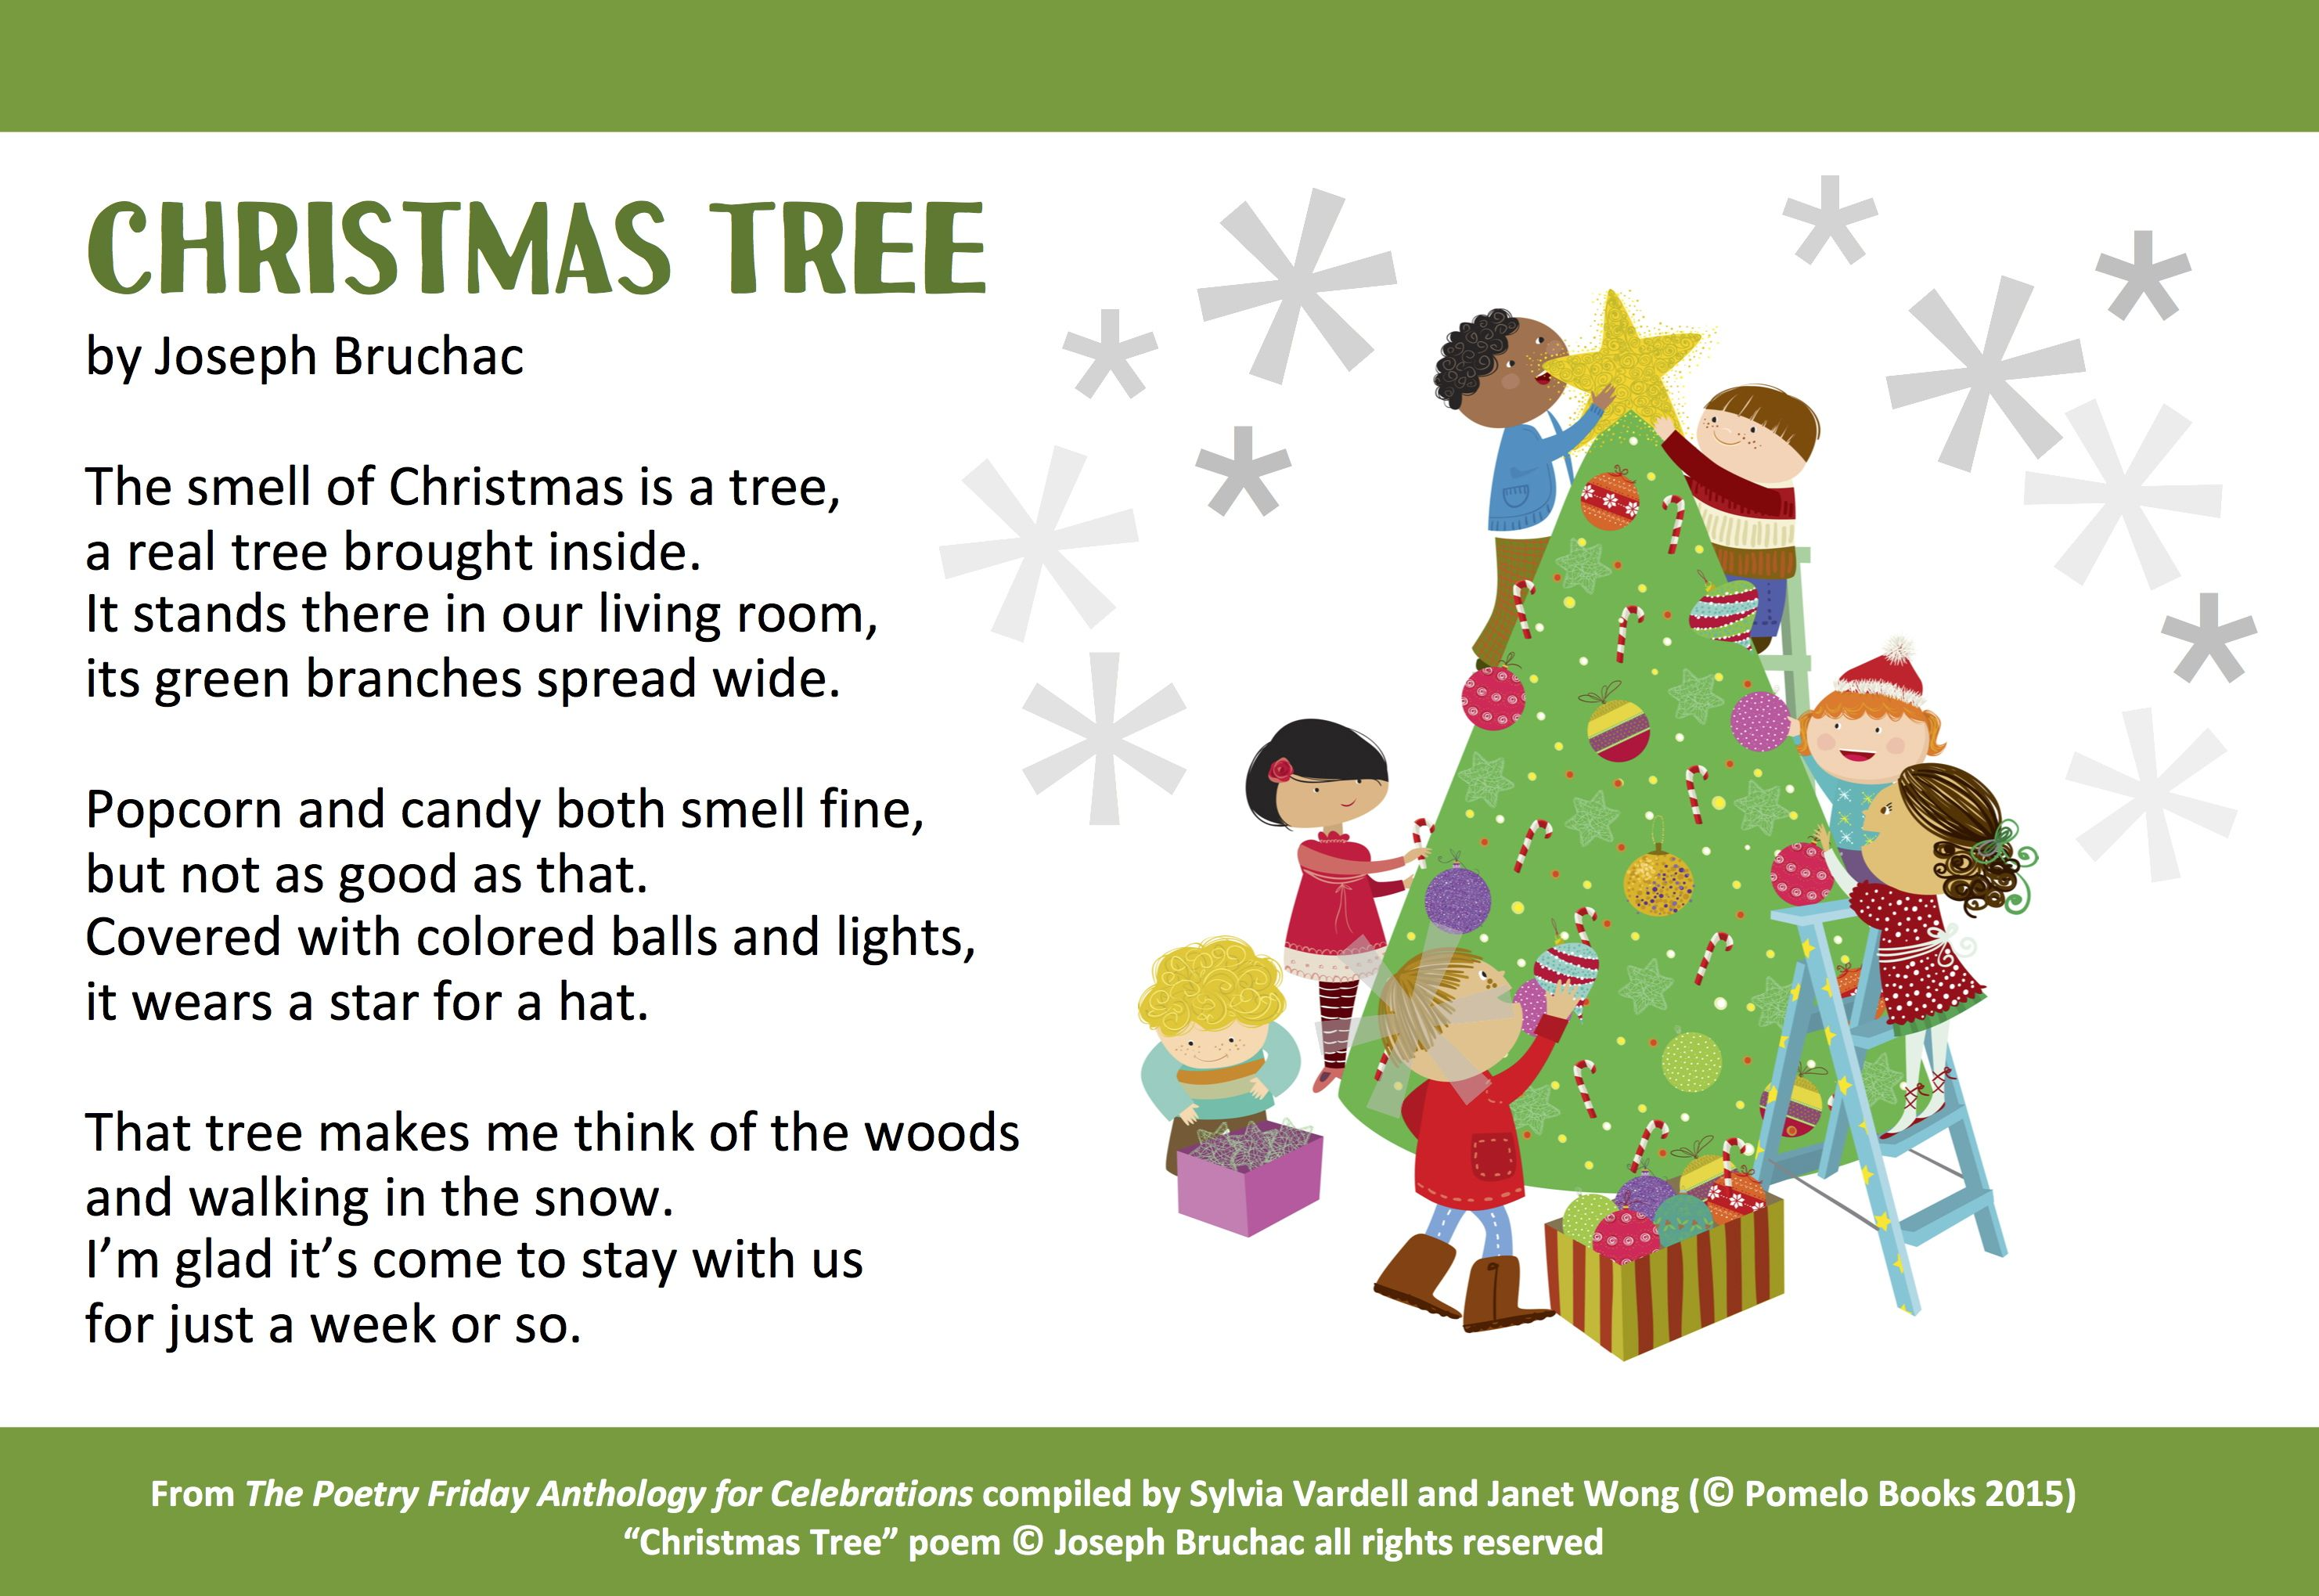 Joseph Bruchac Offers This Lovely Poem Christmas Tree From The Poetry Friday Anthology For Celebrat Merry Christmas Wishes Christmas Poetry Christmas Poems